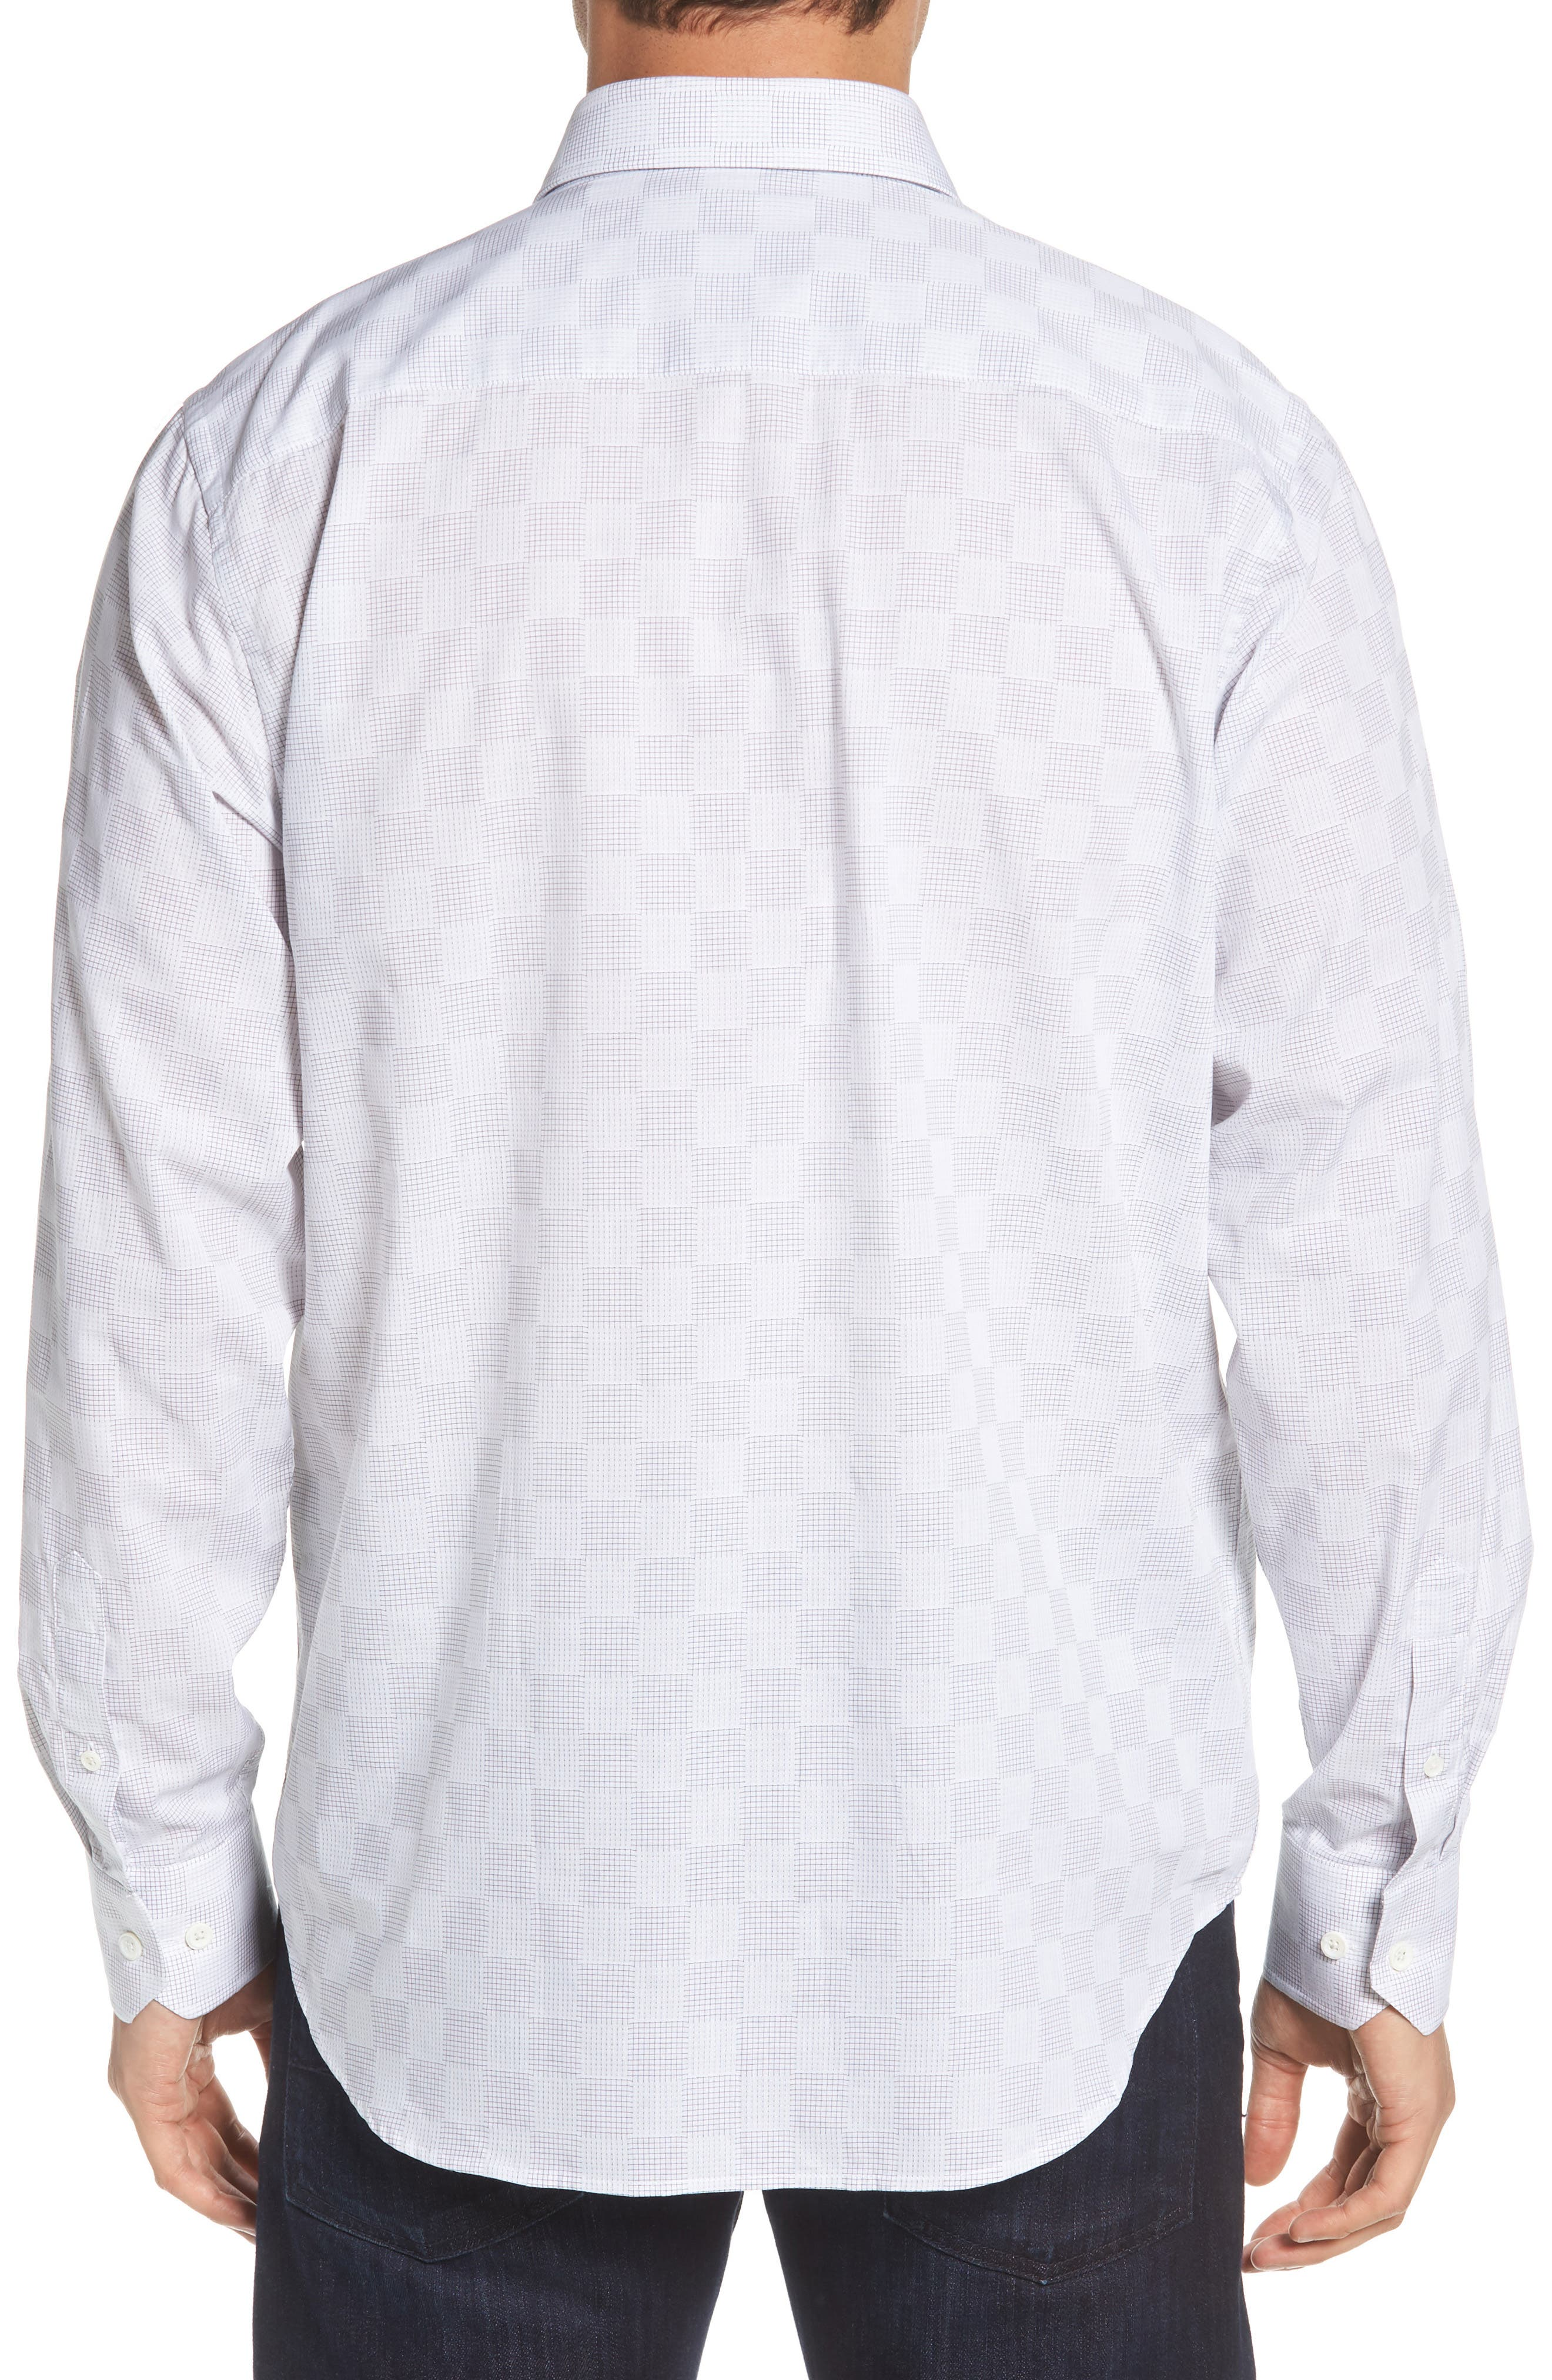 Classic Fit Checkerboard Print Sport Shirt,                             Alternate thumbnail 2, color,                             020